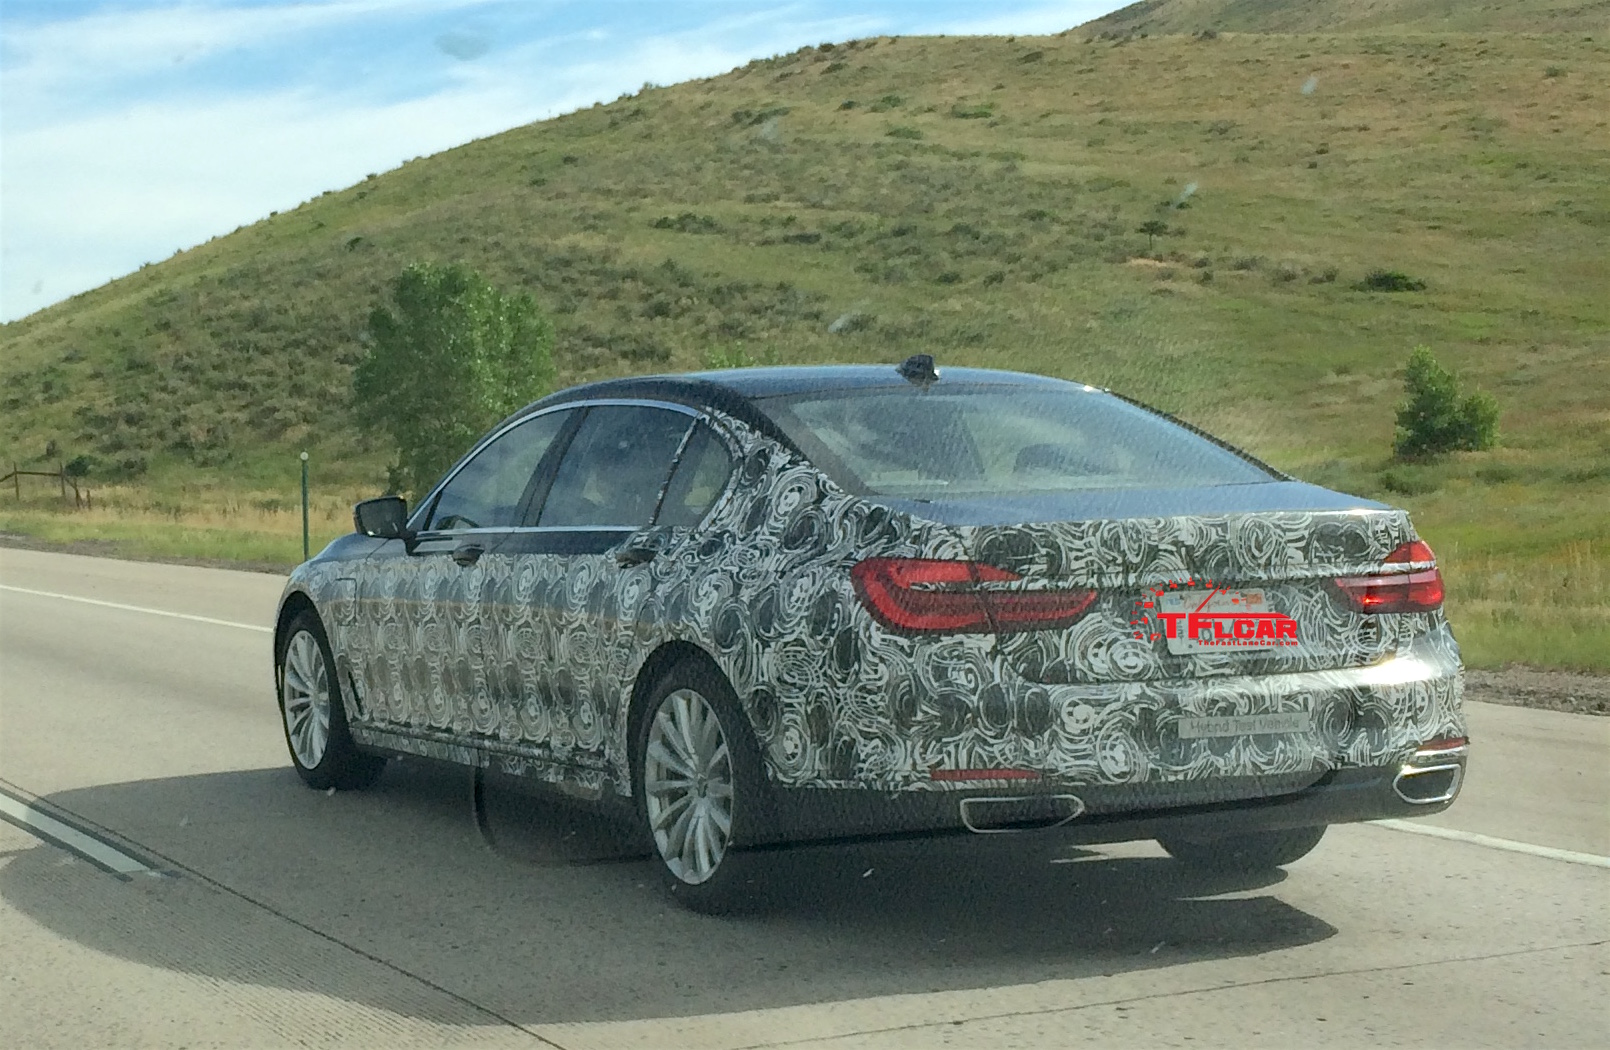 hight resolution of 2017 bmw 740 edrive plug in hybrid caught testing in the wild spied